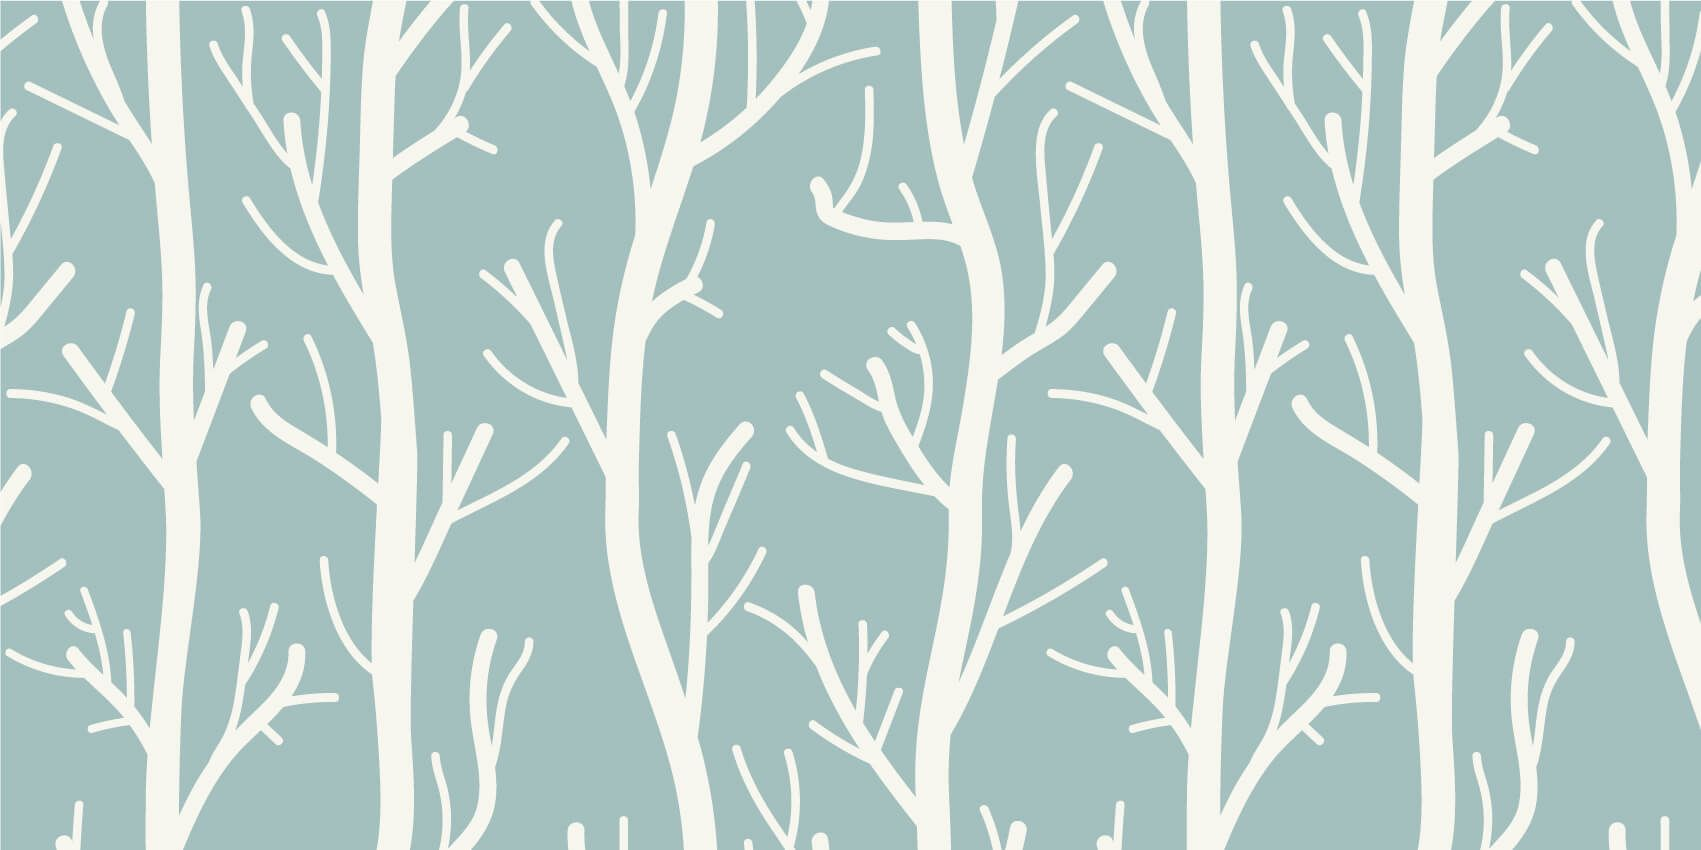 Other - Trees on branches - Children's room